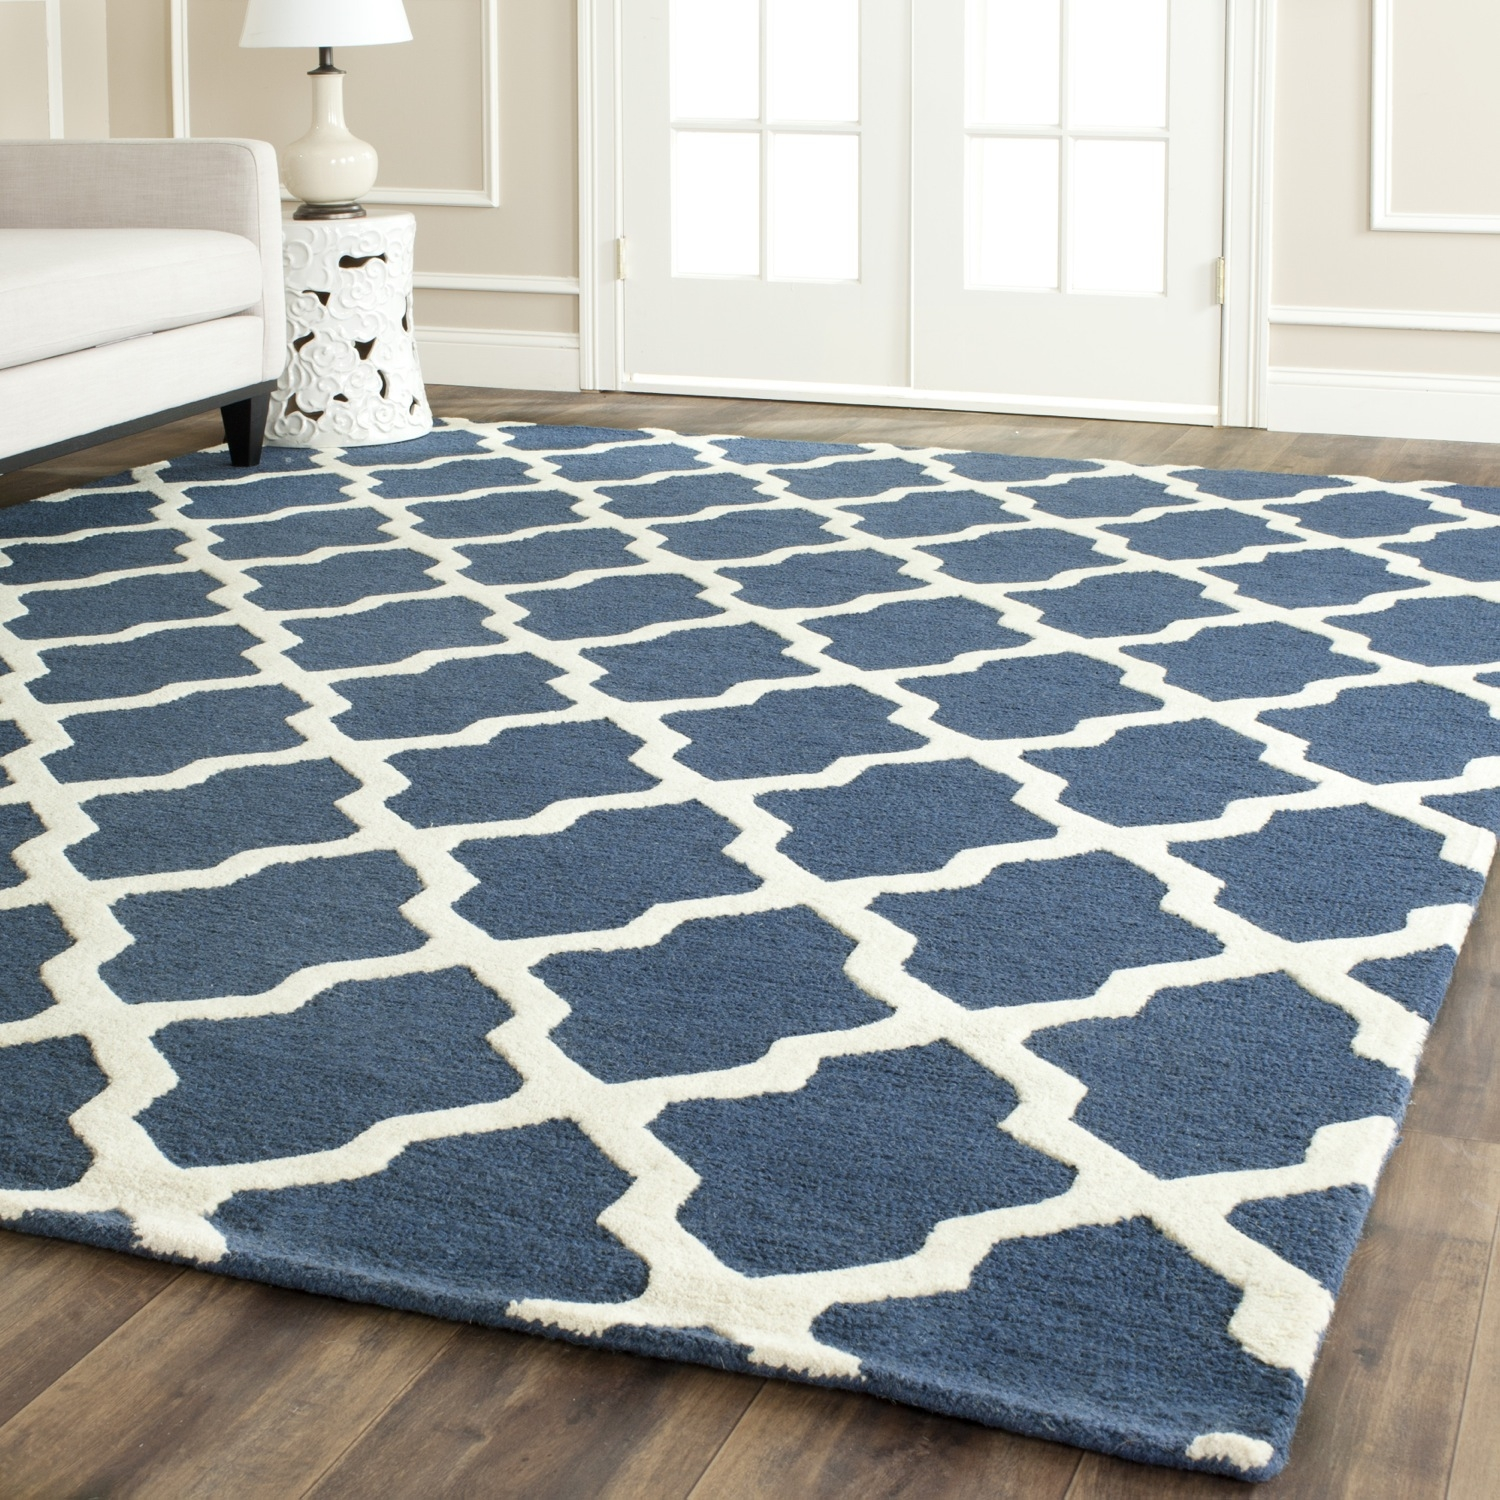 Safavieh Cambridge Navy Blue Ivory Wool Area Rug Cam121g With Regard To Blue Wool Area Rug (Image 9 of 15)